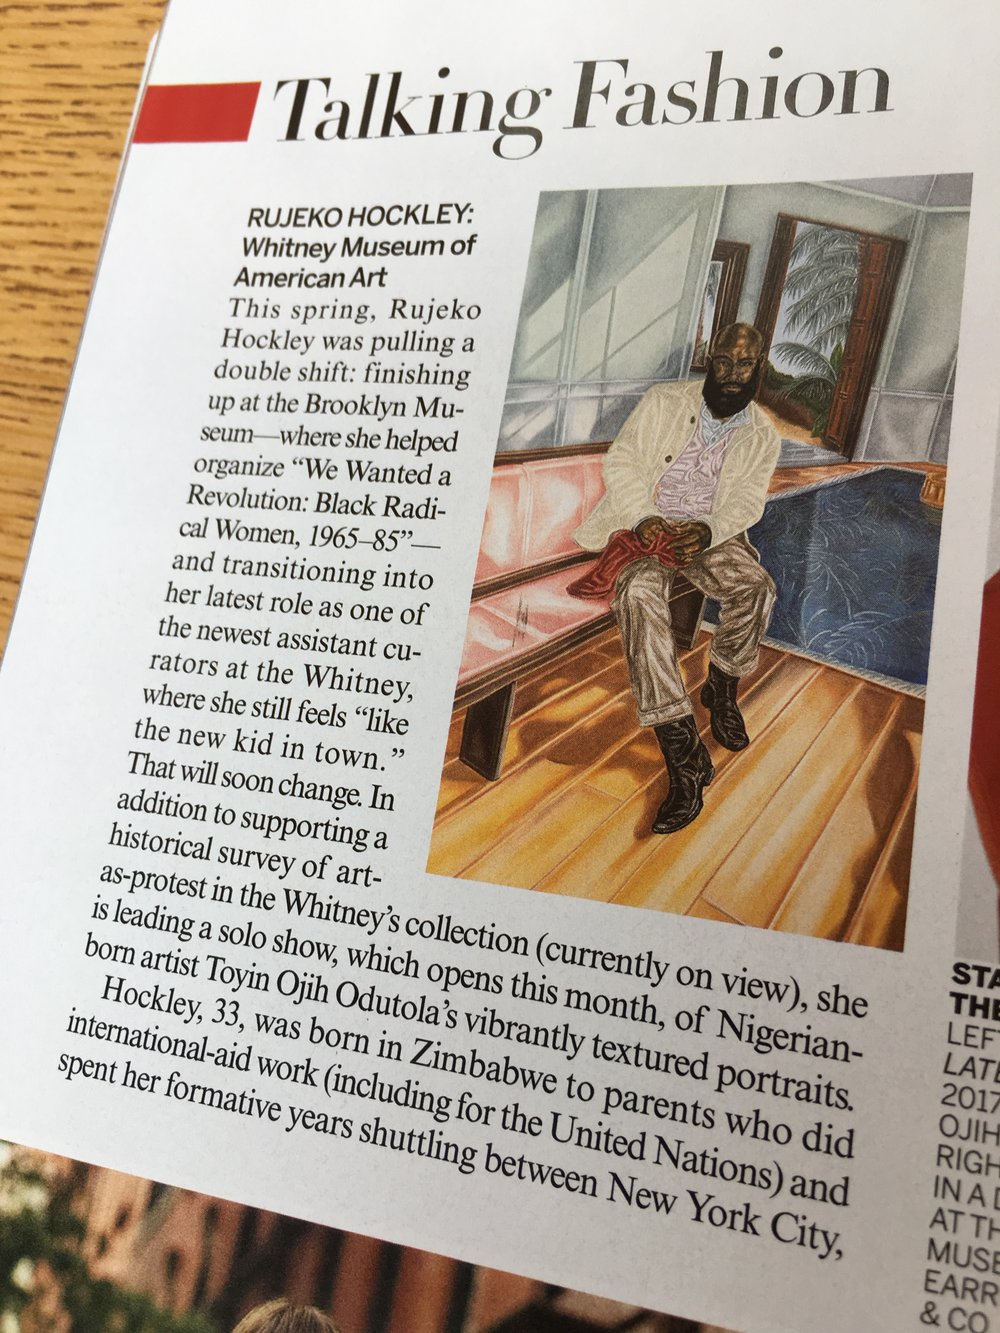 Rujecko Hockley just curated a show of Toyin Odutola's work at the Whitney